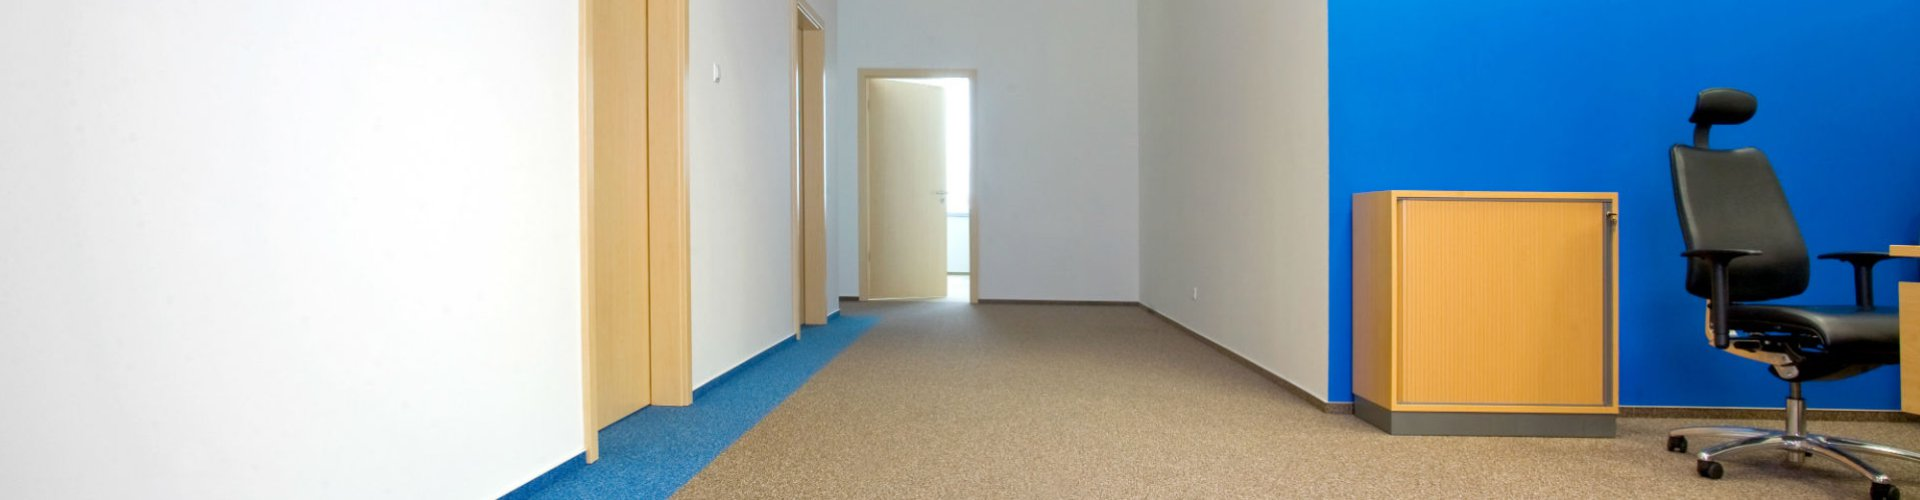 commercial-carpet-cleaning-perth